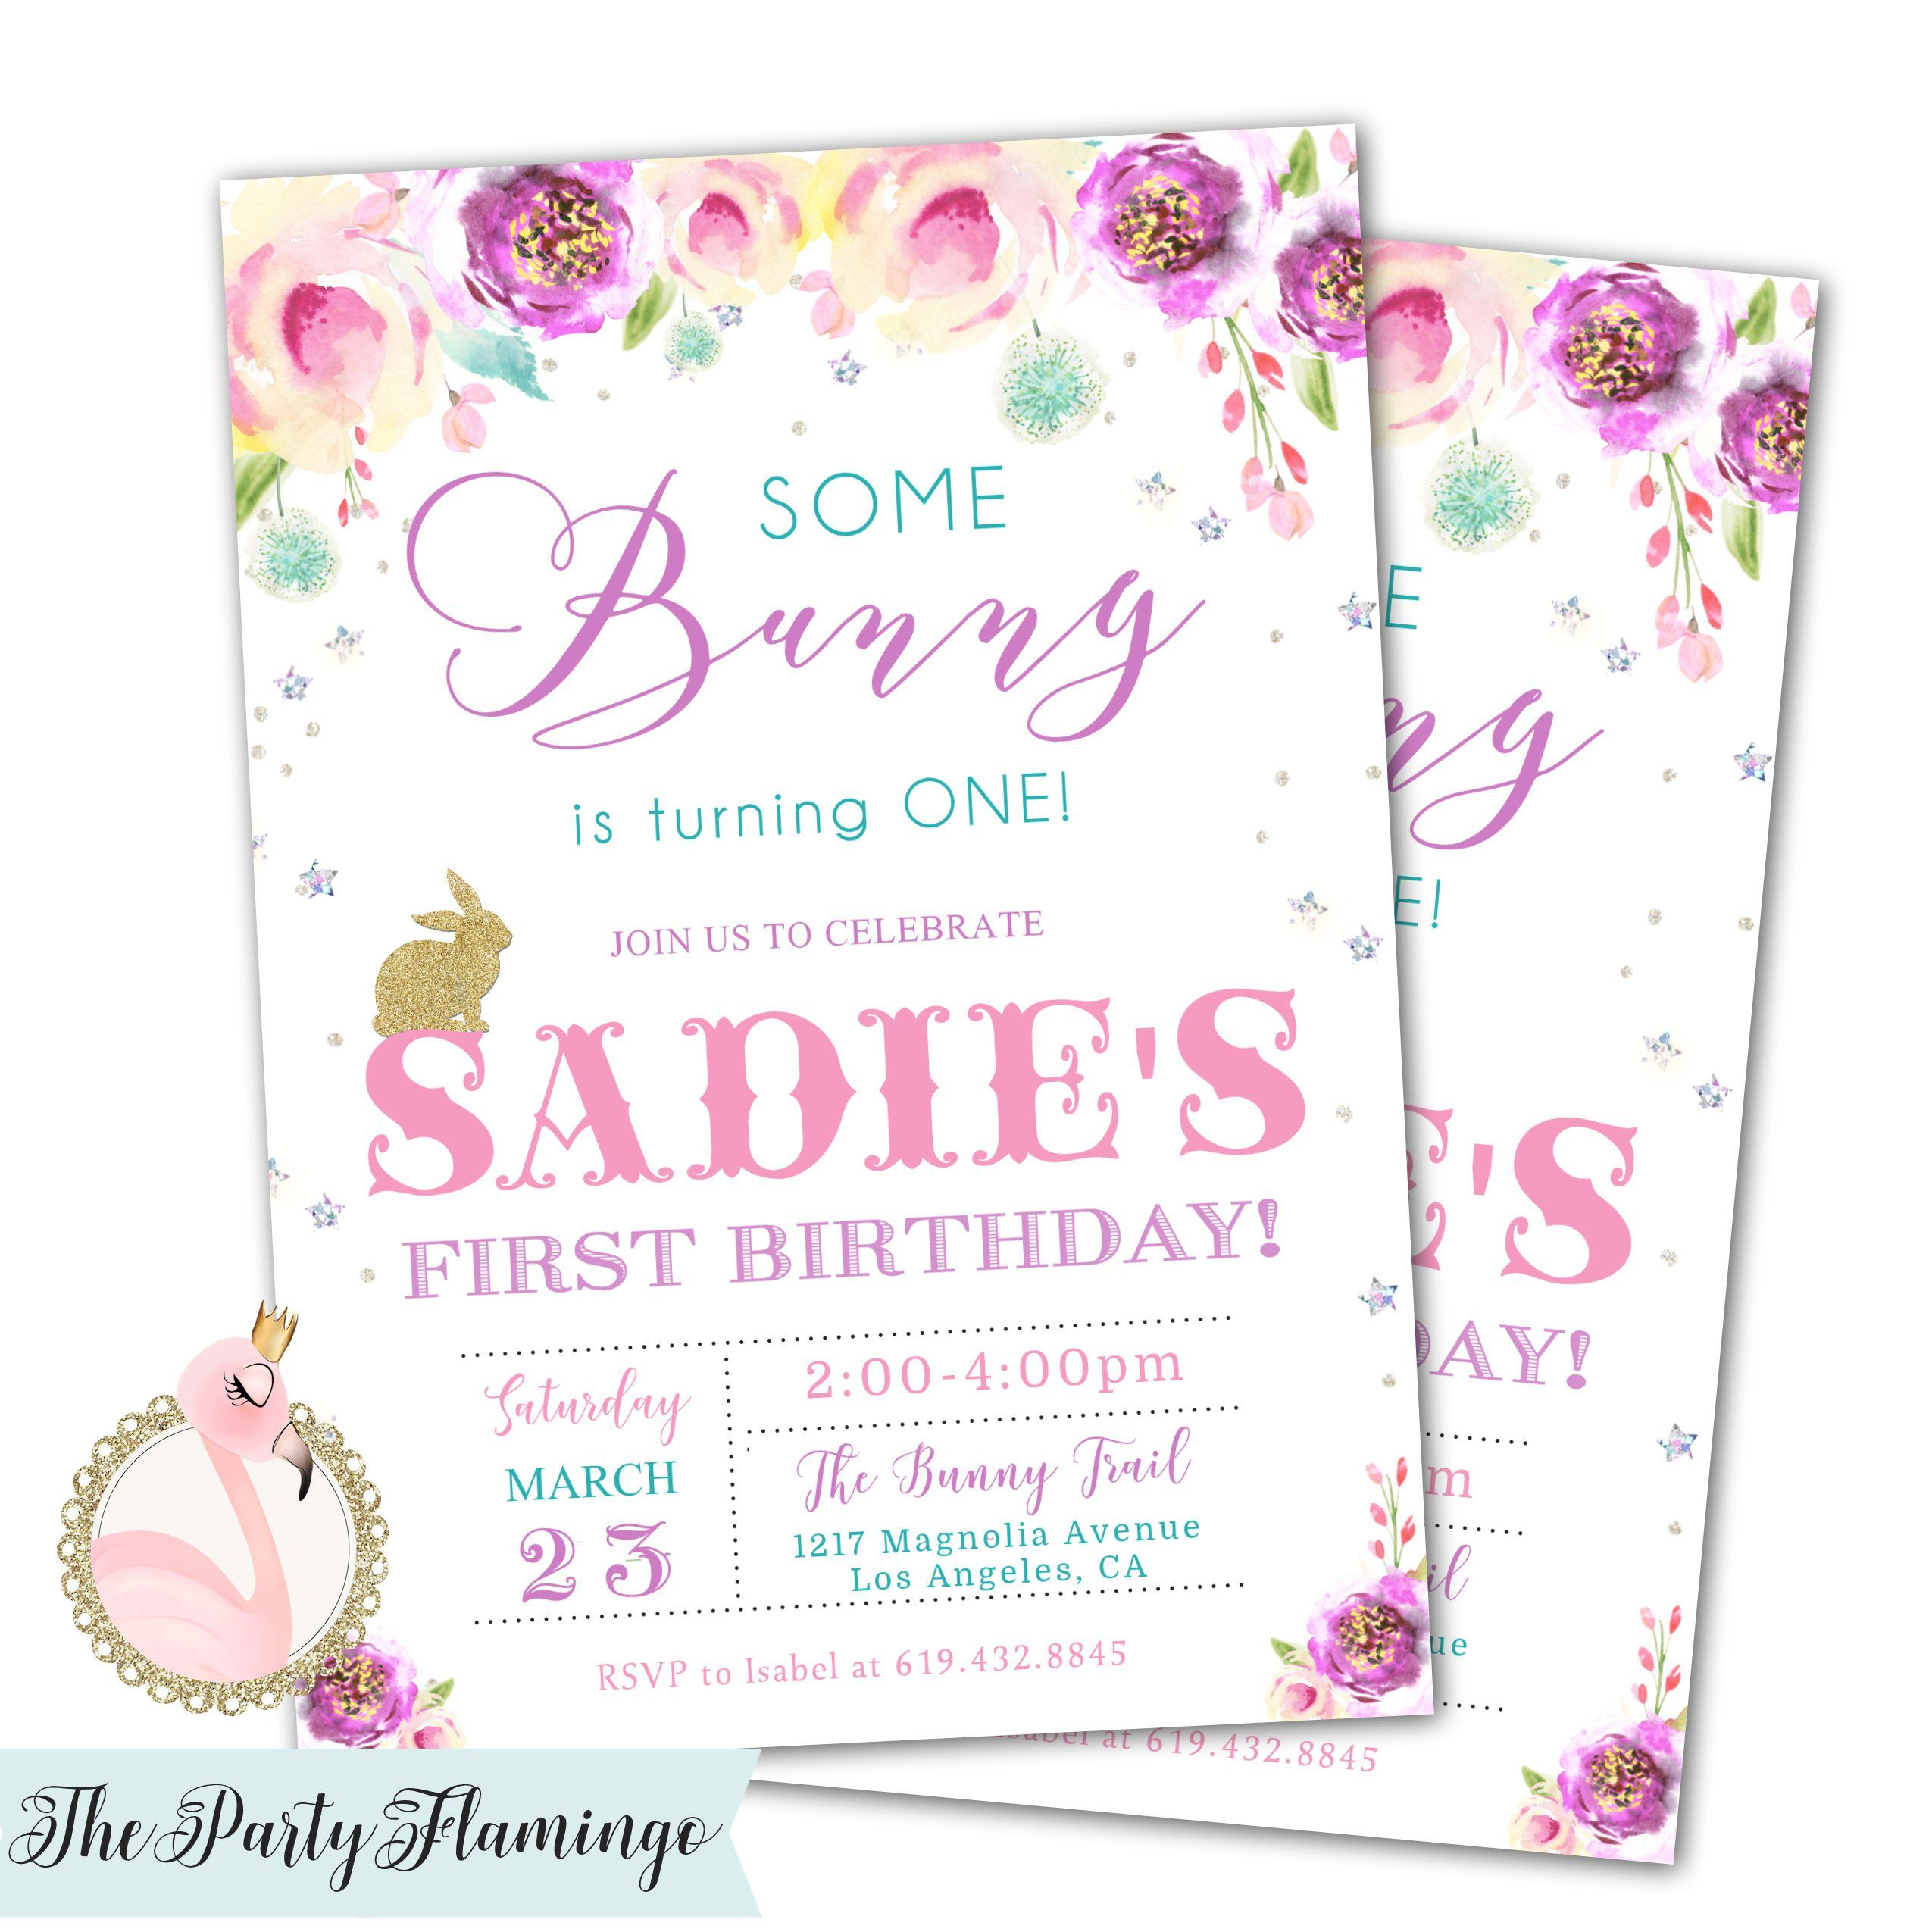 Bunny Birthday Invitations, Some Bunny is turning ONE (or any age ...